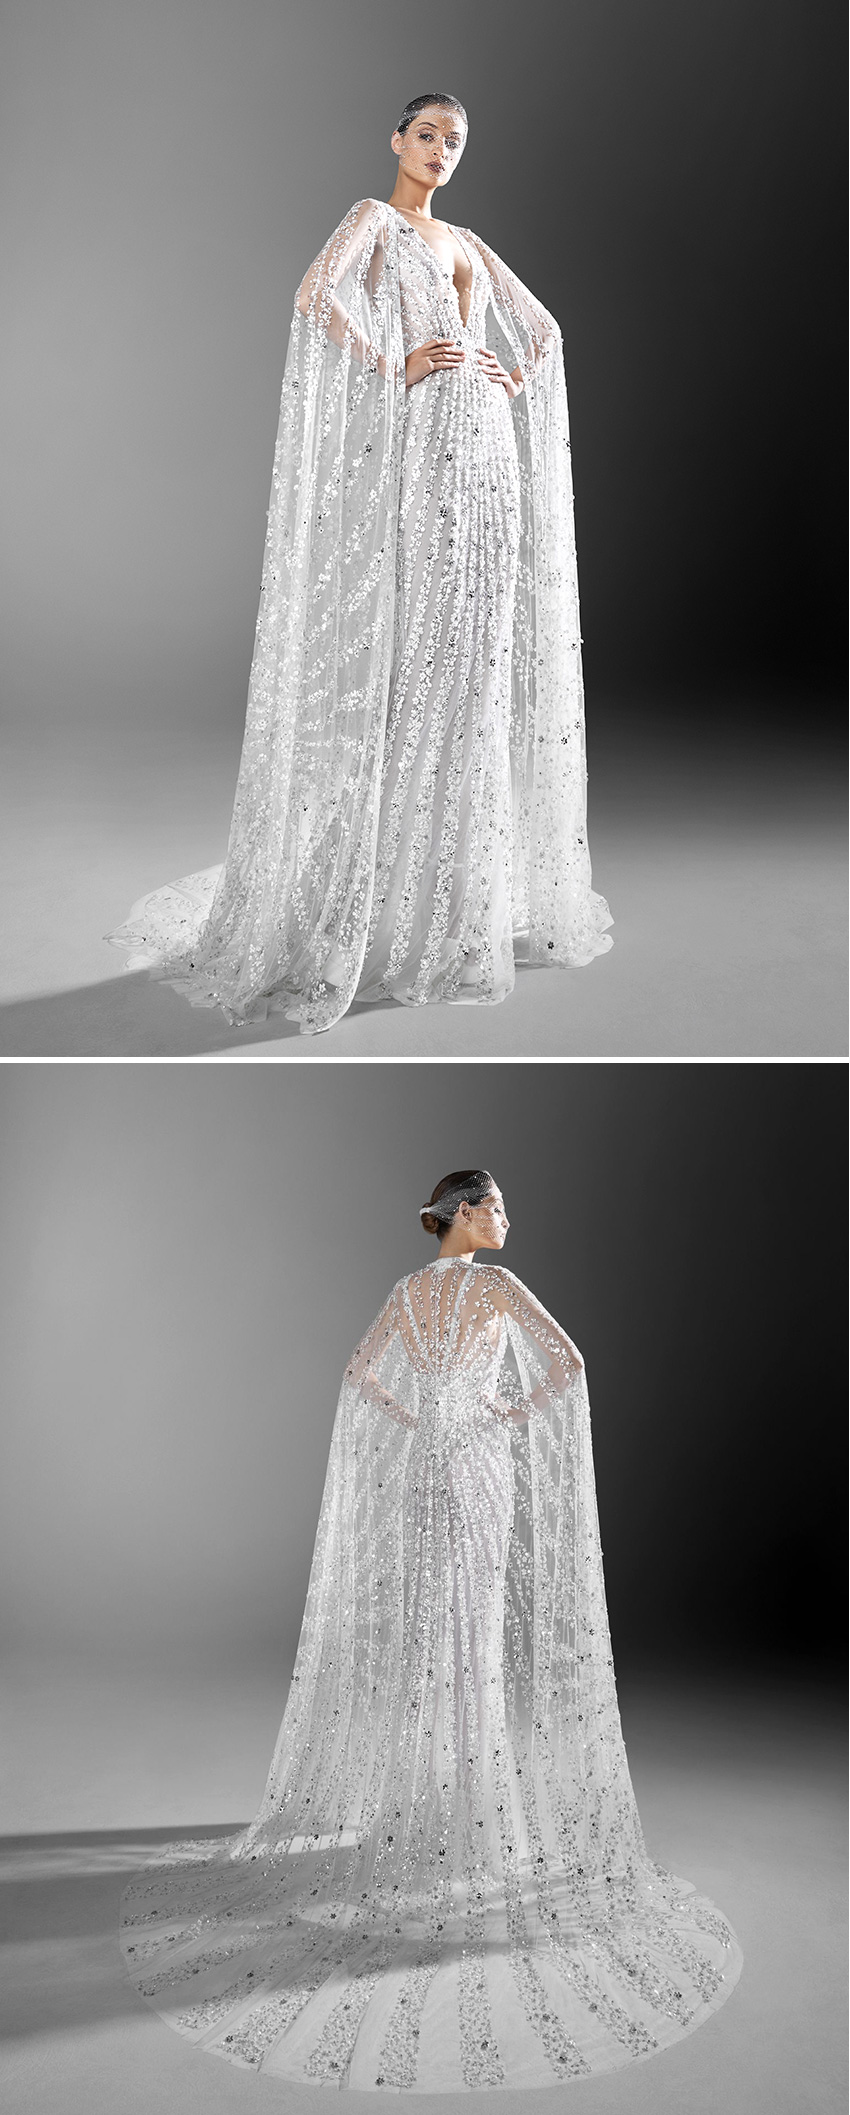 Zuhair Murad Spring 2021 bride is elegantly adorned with crystal embroidered capes featured in Perfect Wedding Magazine